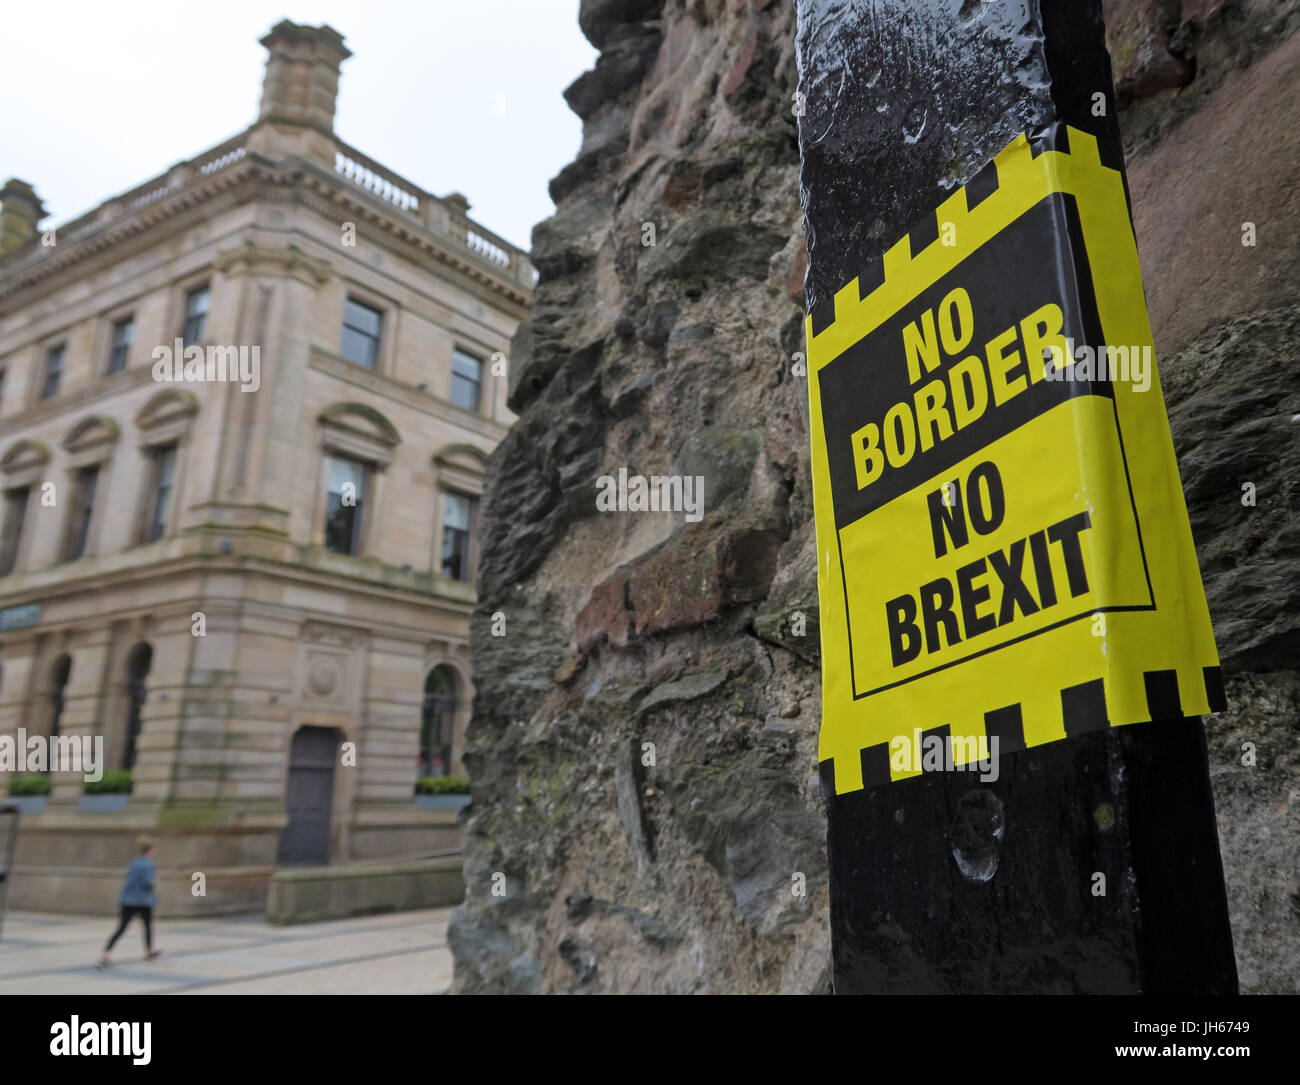 Irish,Bogside,Troubles,Political,NorthernIreland,tourist,Tourism,Struggle,DerryCity,Peace,Art,Culture,violence,fighter,painting,No,Border,Brexit,NoBorder,Nobrexit,remain,remainers,remoaners,sticker,poster,gotonysmith,city,no,hard,border,Tariff,Free,access,Tariff